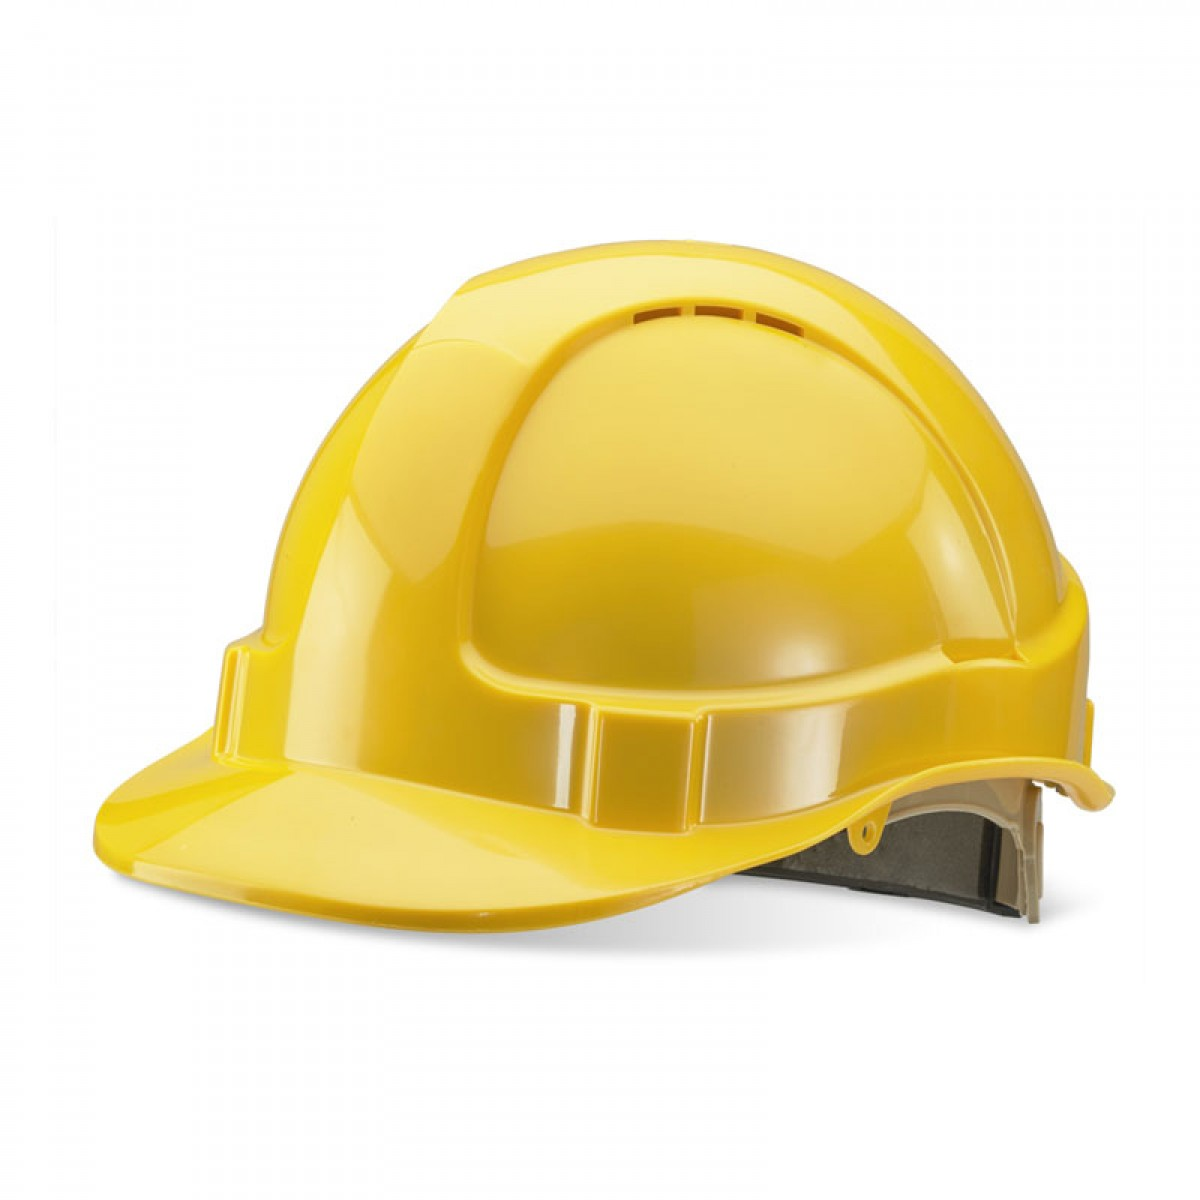 Premium Yellow Vented Safety Helmet With Rain Gutters And